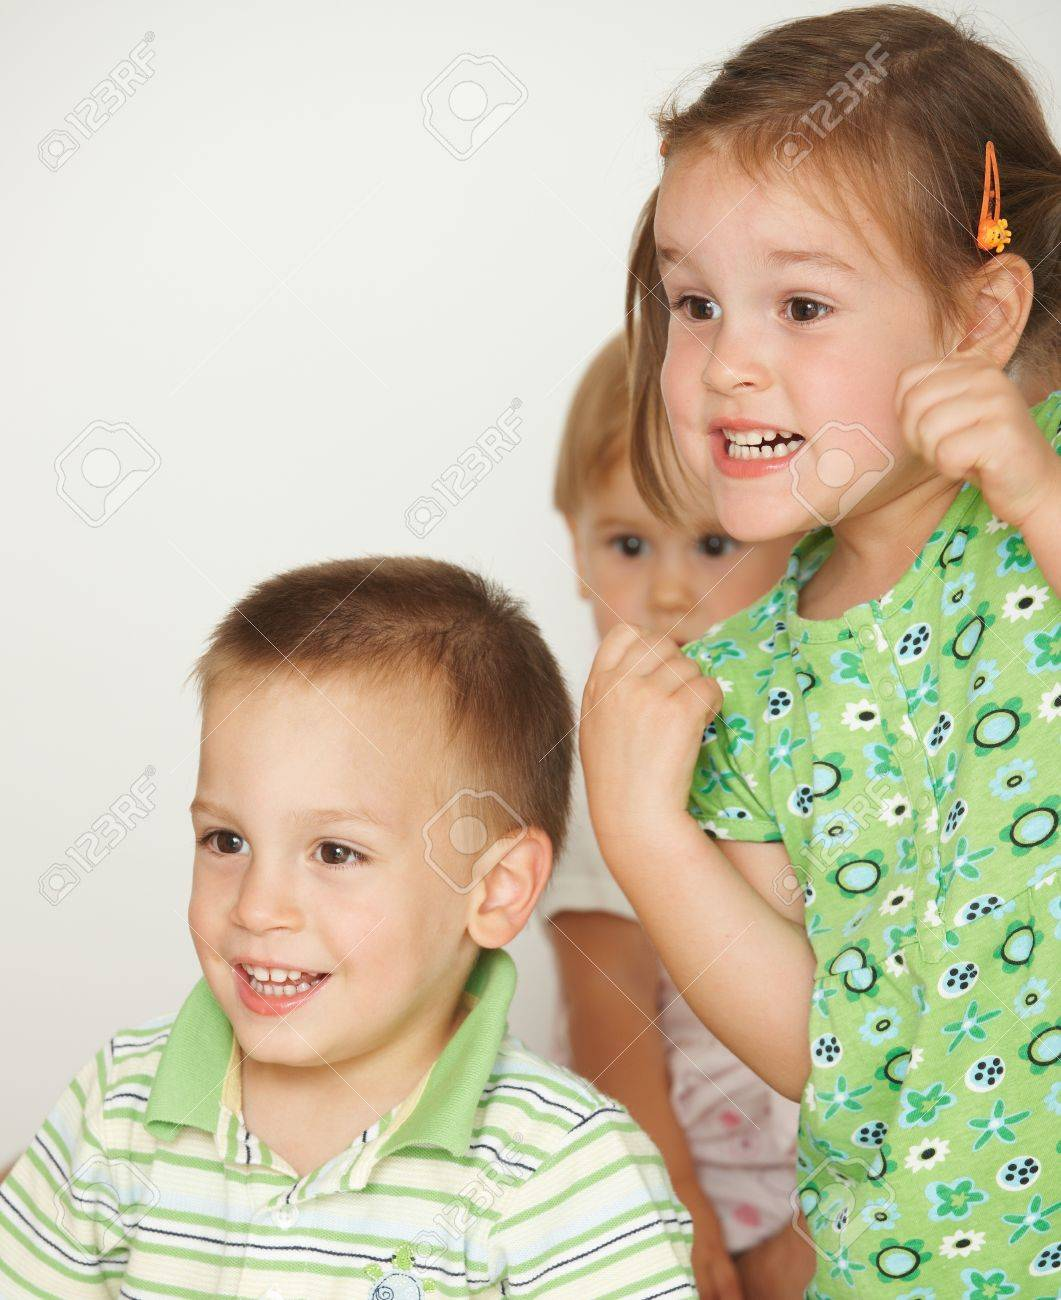 Happy little children at attention, white background. Copy space in top left corner. - 7058775